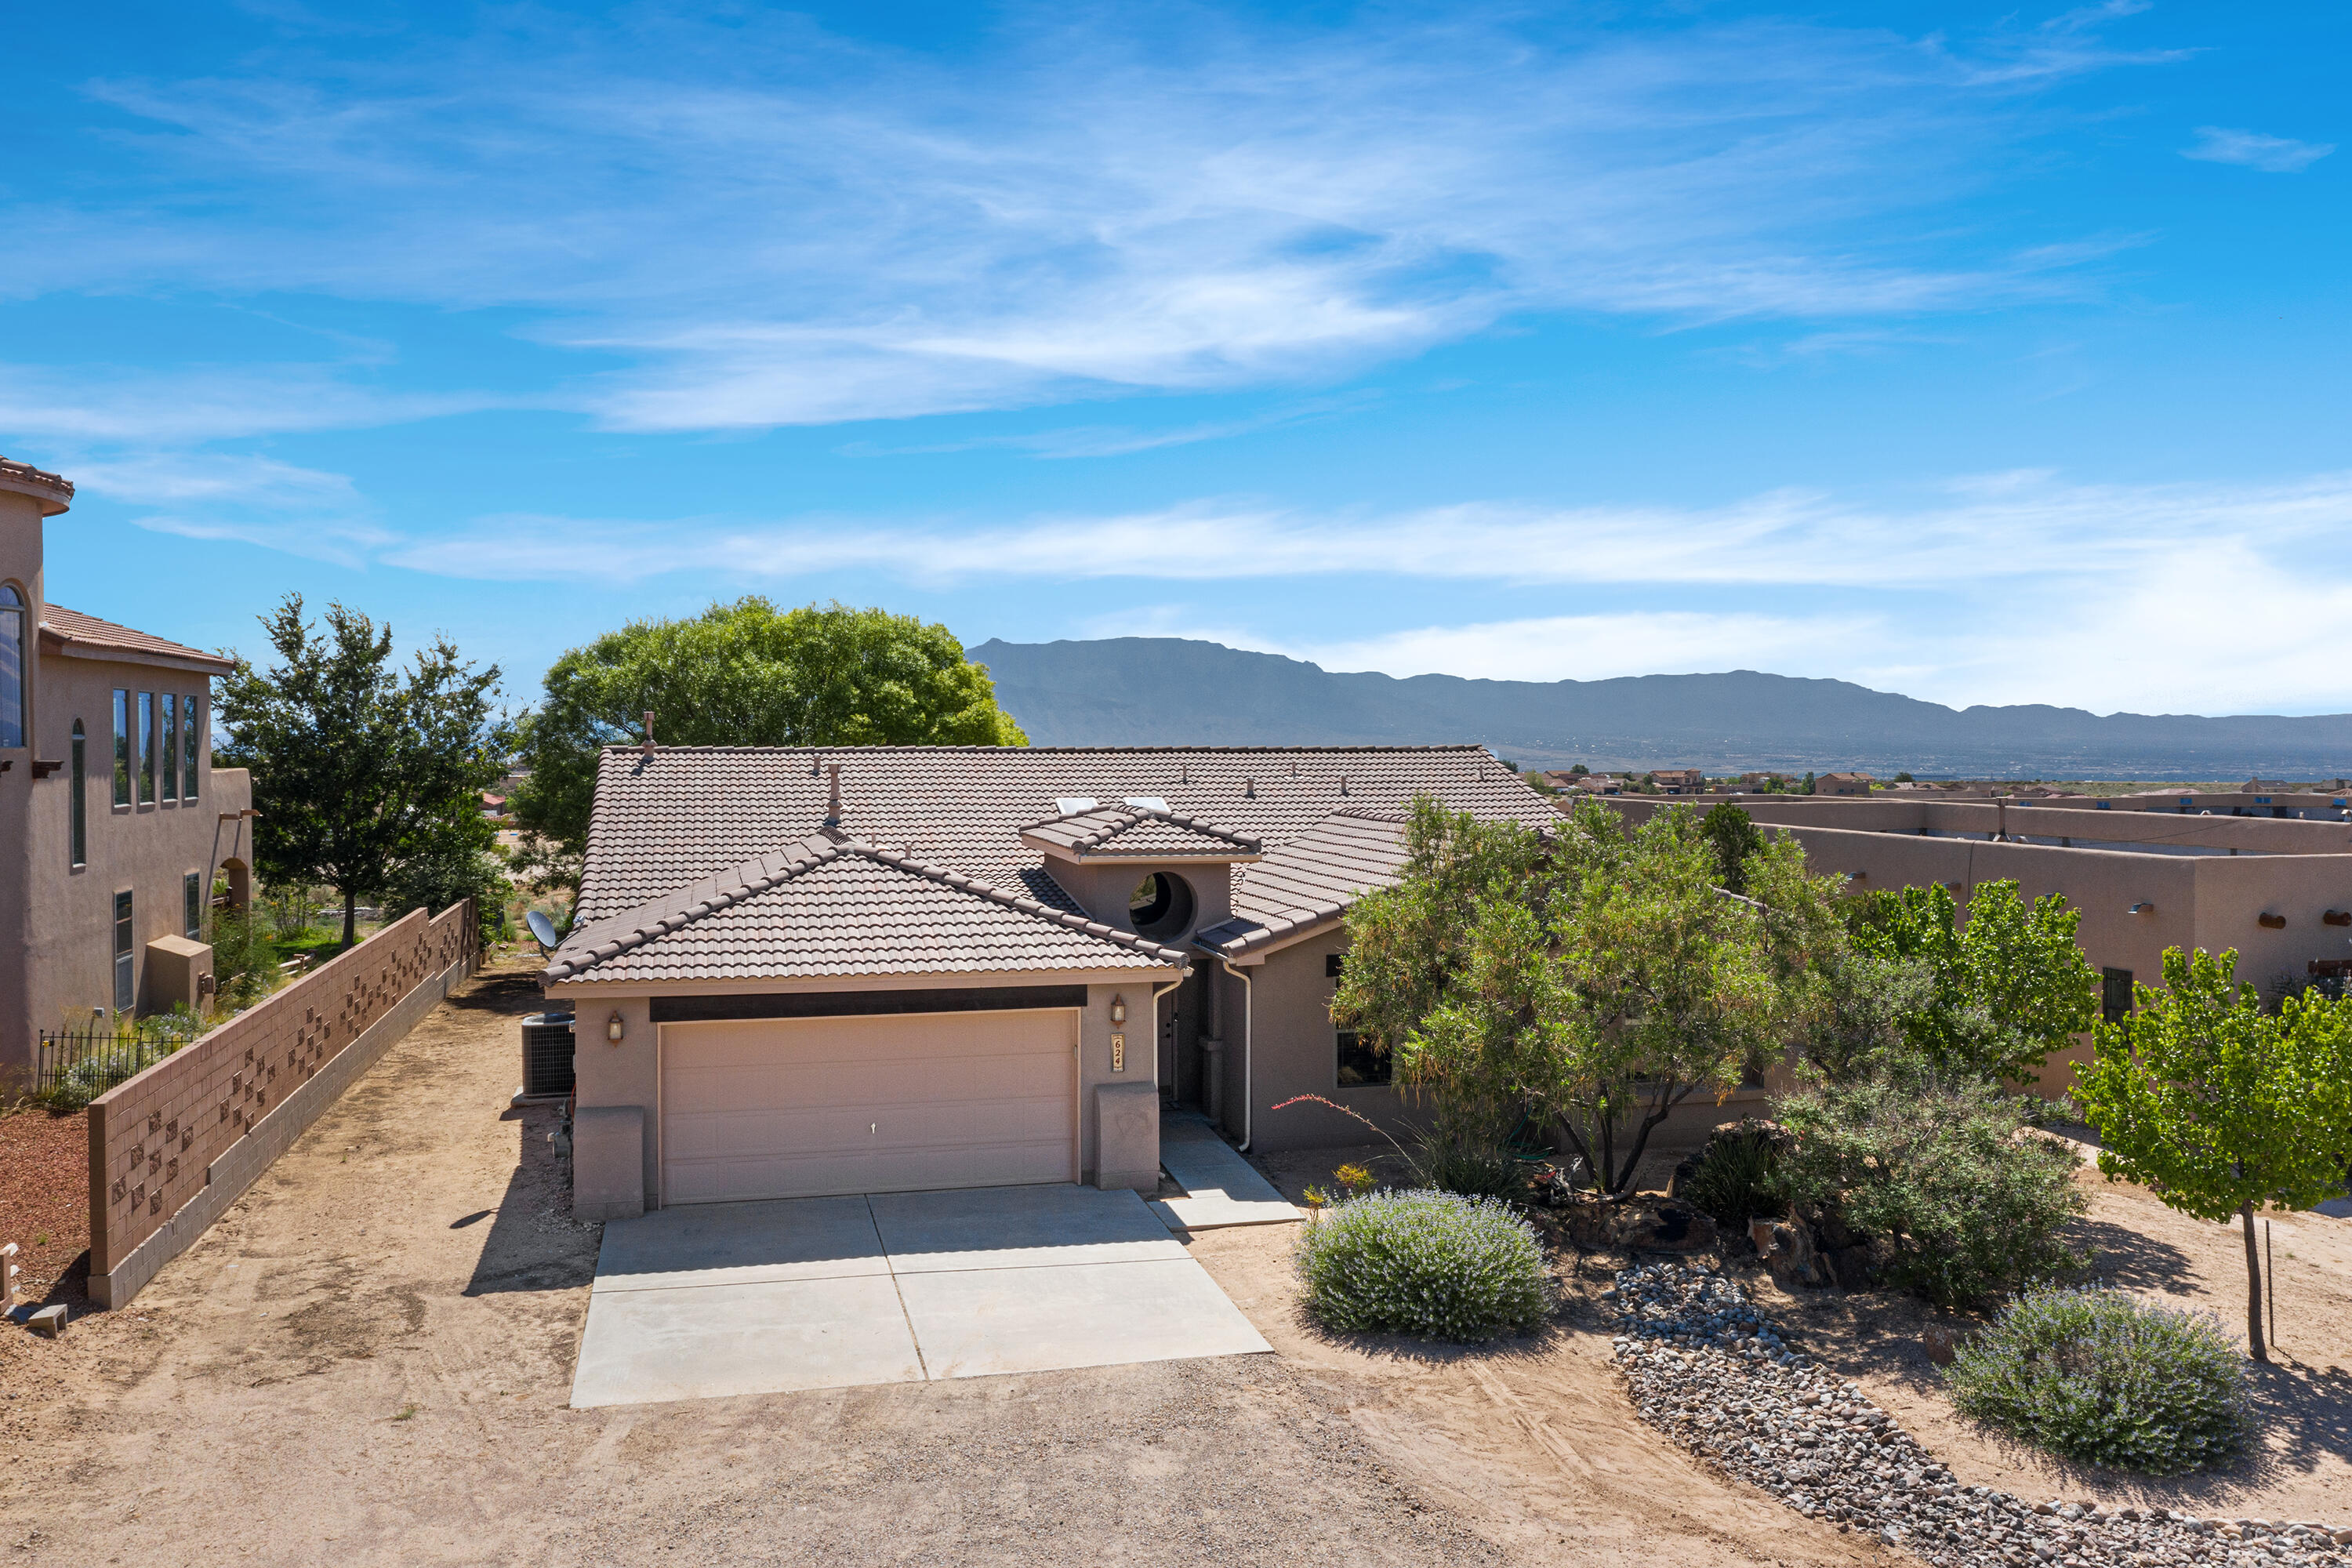 Come see this semi-custom Wallen Home with the most INCREDIBLE views!!  Set on a 1/2 acre, these may be some of the best views in Rio Rancho.  Relax outdoors and listen to your beautiful, oversized water feature, or just listen to the wind blow through the trees.  Enjoy the open floorplan with eat-in kitchen and gas appliances.  All bedrooms have NEW carpet, and master bedroom is an oversized comfort zone.  Master bath features dual sinks, a gorgeous walk-in shower and separate garden tub, plus great walk-in closet.  In addition, there's a great office with plenty of space. Plus, bring your toys! Garage has room for 3 cars with a tandem space, and there is side-yard access that can lead to the backyard for your camping toys.  Schedule your showing today!